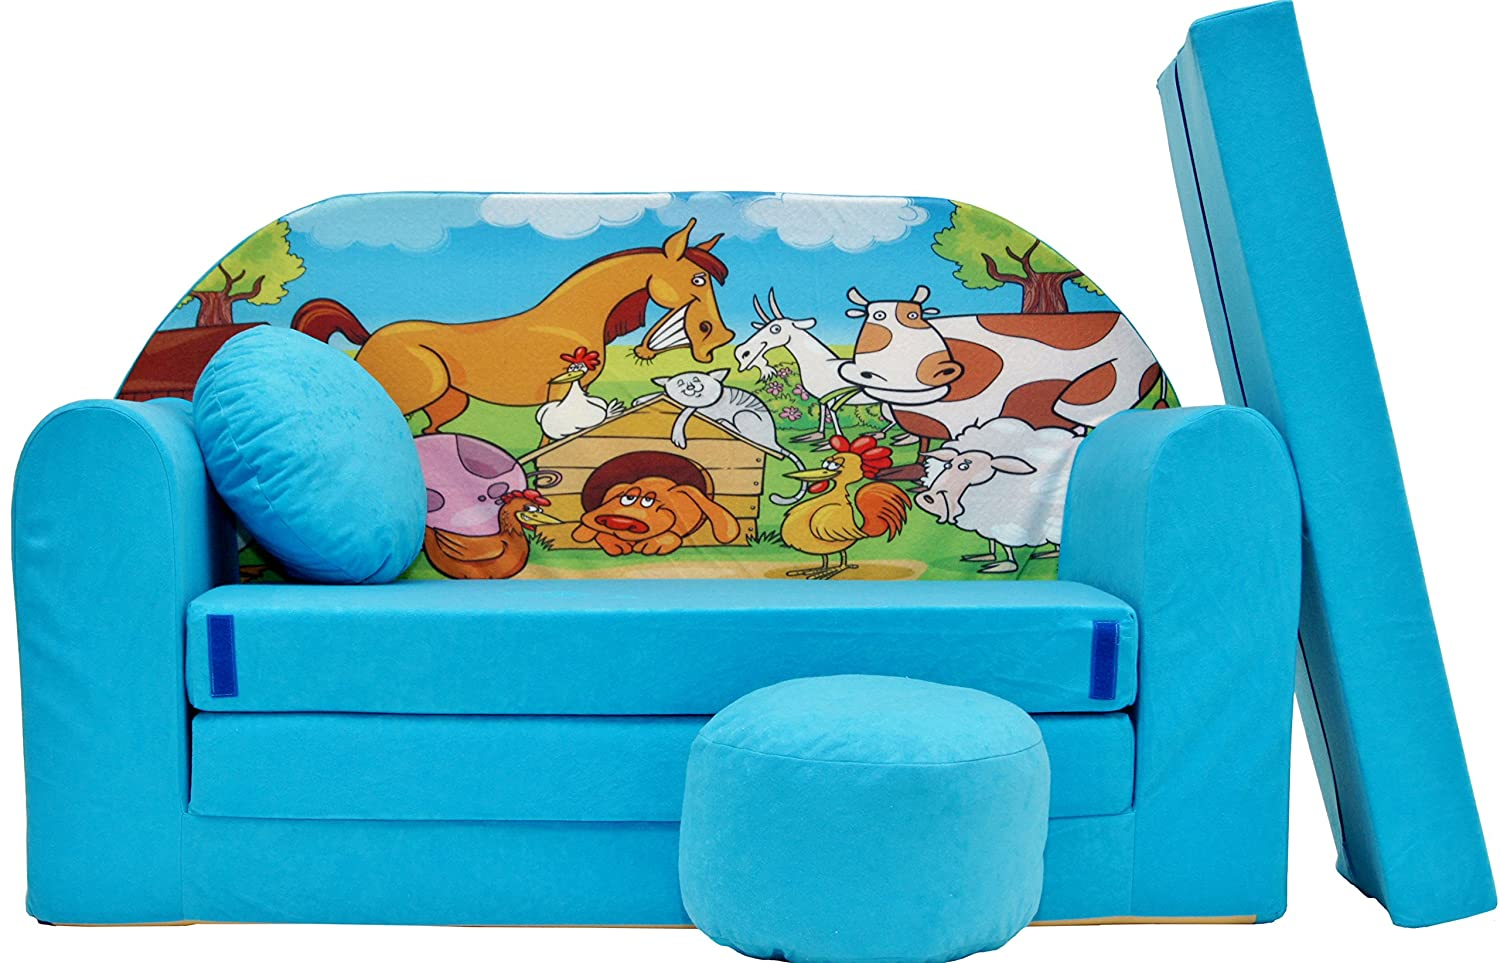 Pro Cosmo B5 Kids Sofa Bed Futon with Pouffe/Footstool/Pillow, Fabric, Blue, 168 x 98 x 60 cm, Cotton 5902020145165